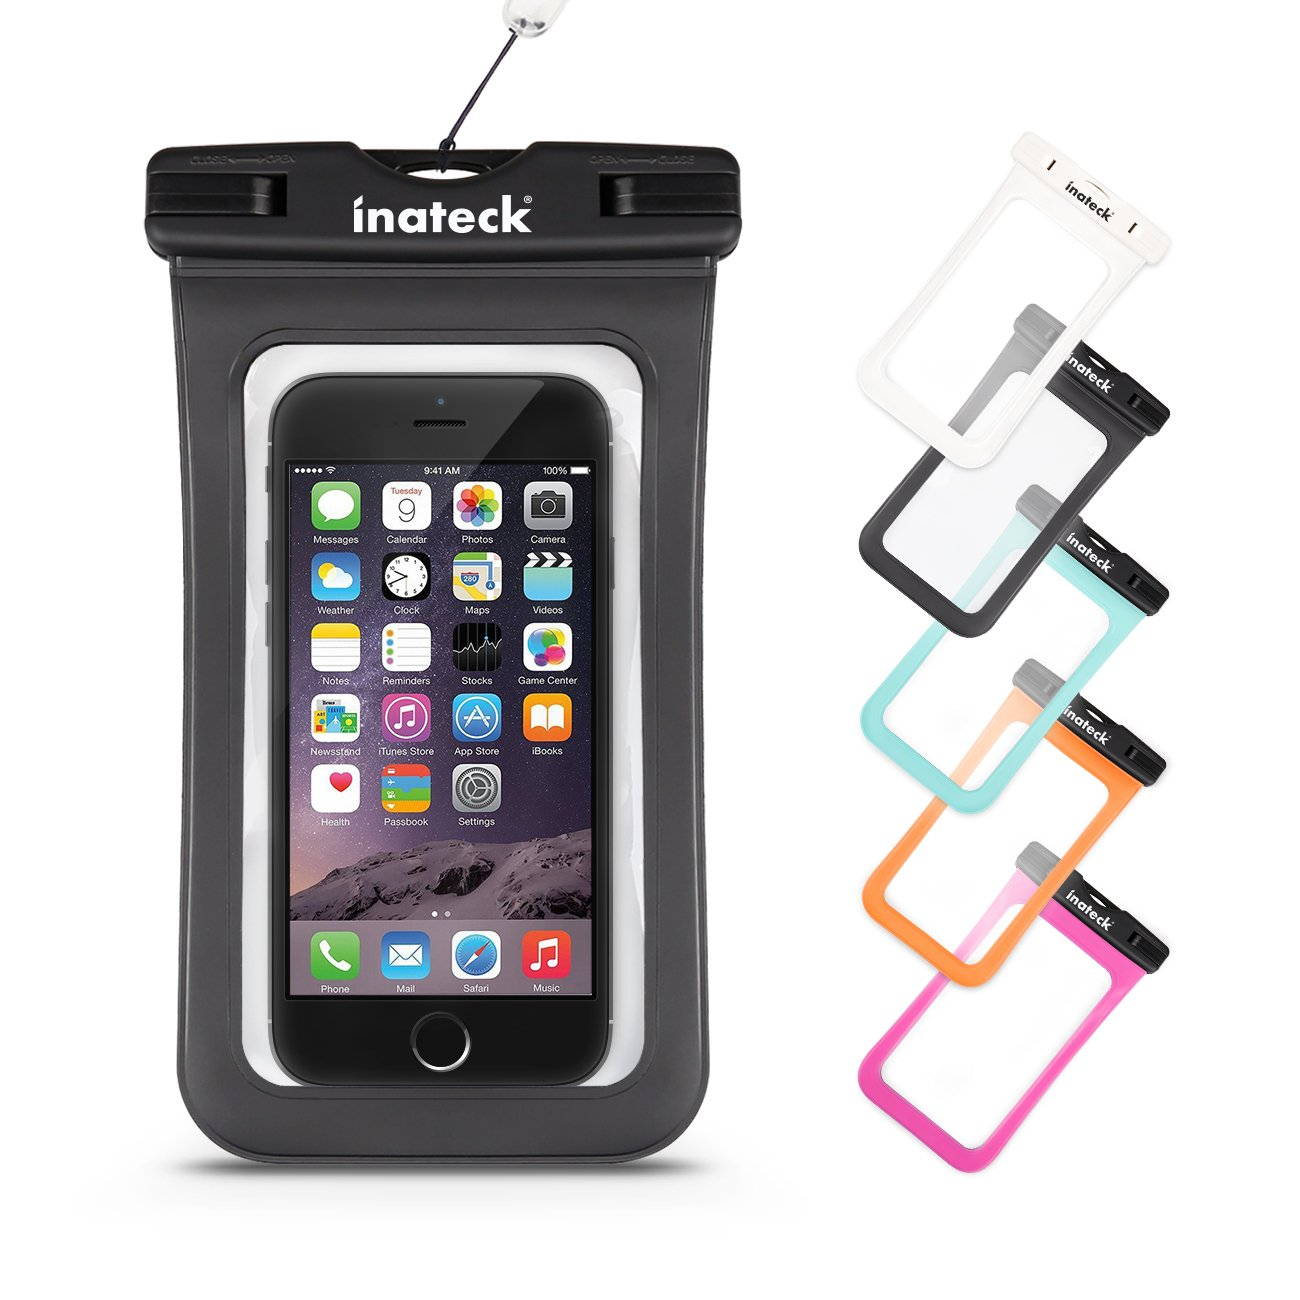 Amazon - Inateck Universal IPX8 Waterproof Case - $6.99